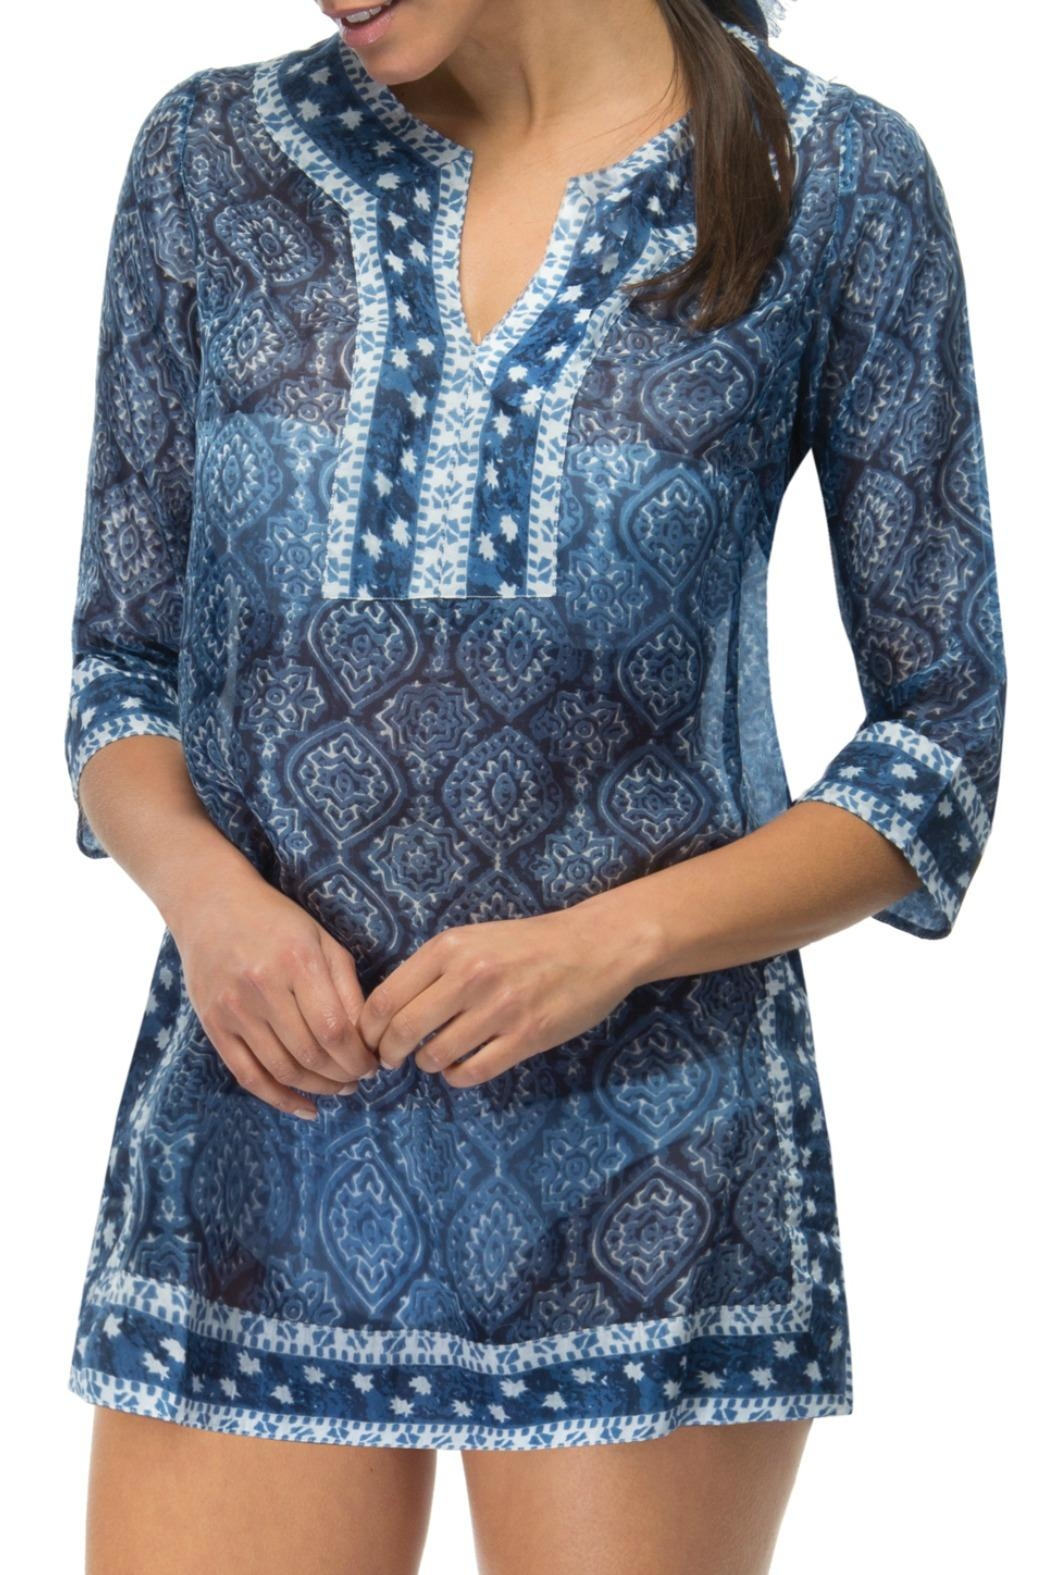 Gretchen Scott Easy Breezy Tunic Dress - Main Image